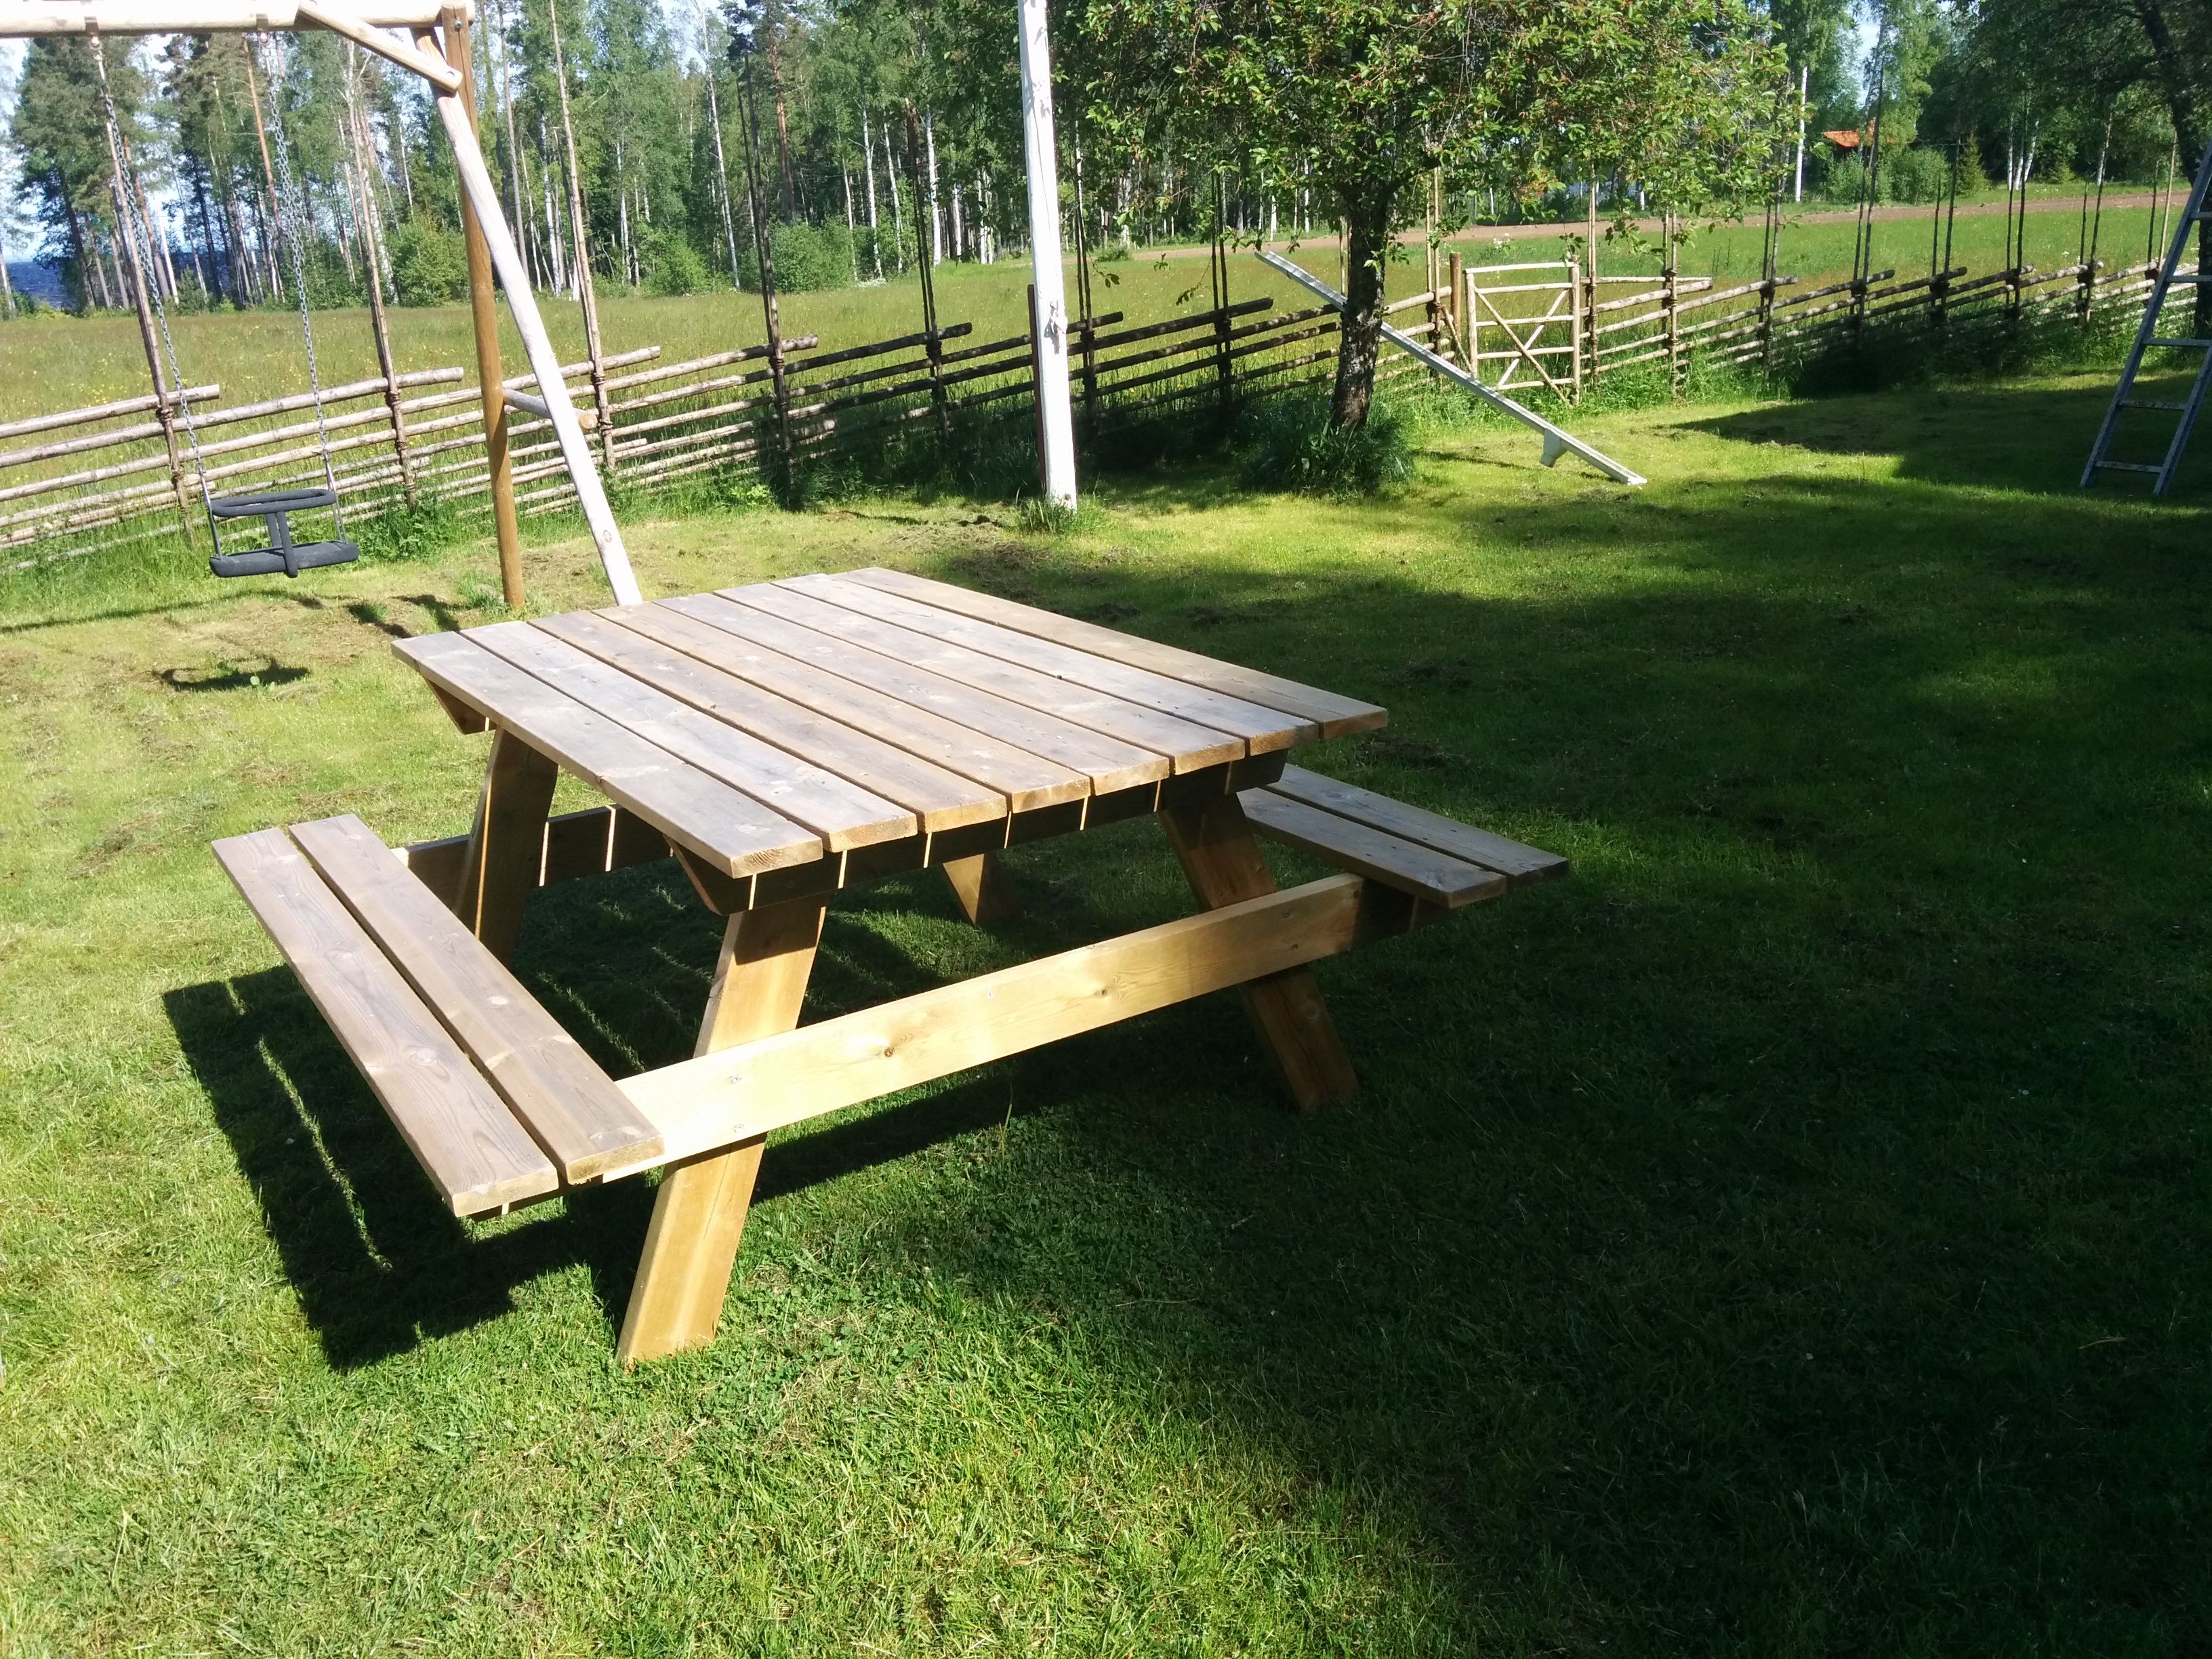 Garden table with benches